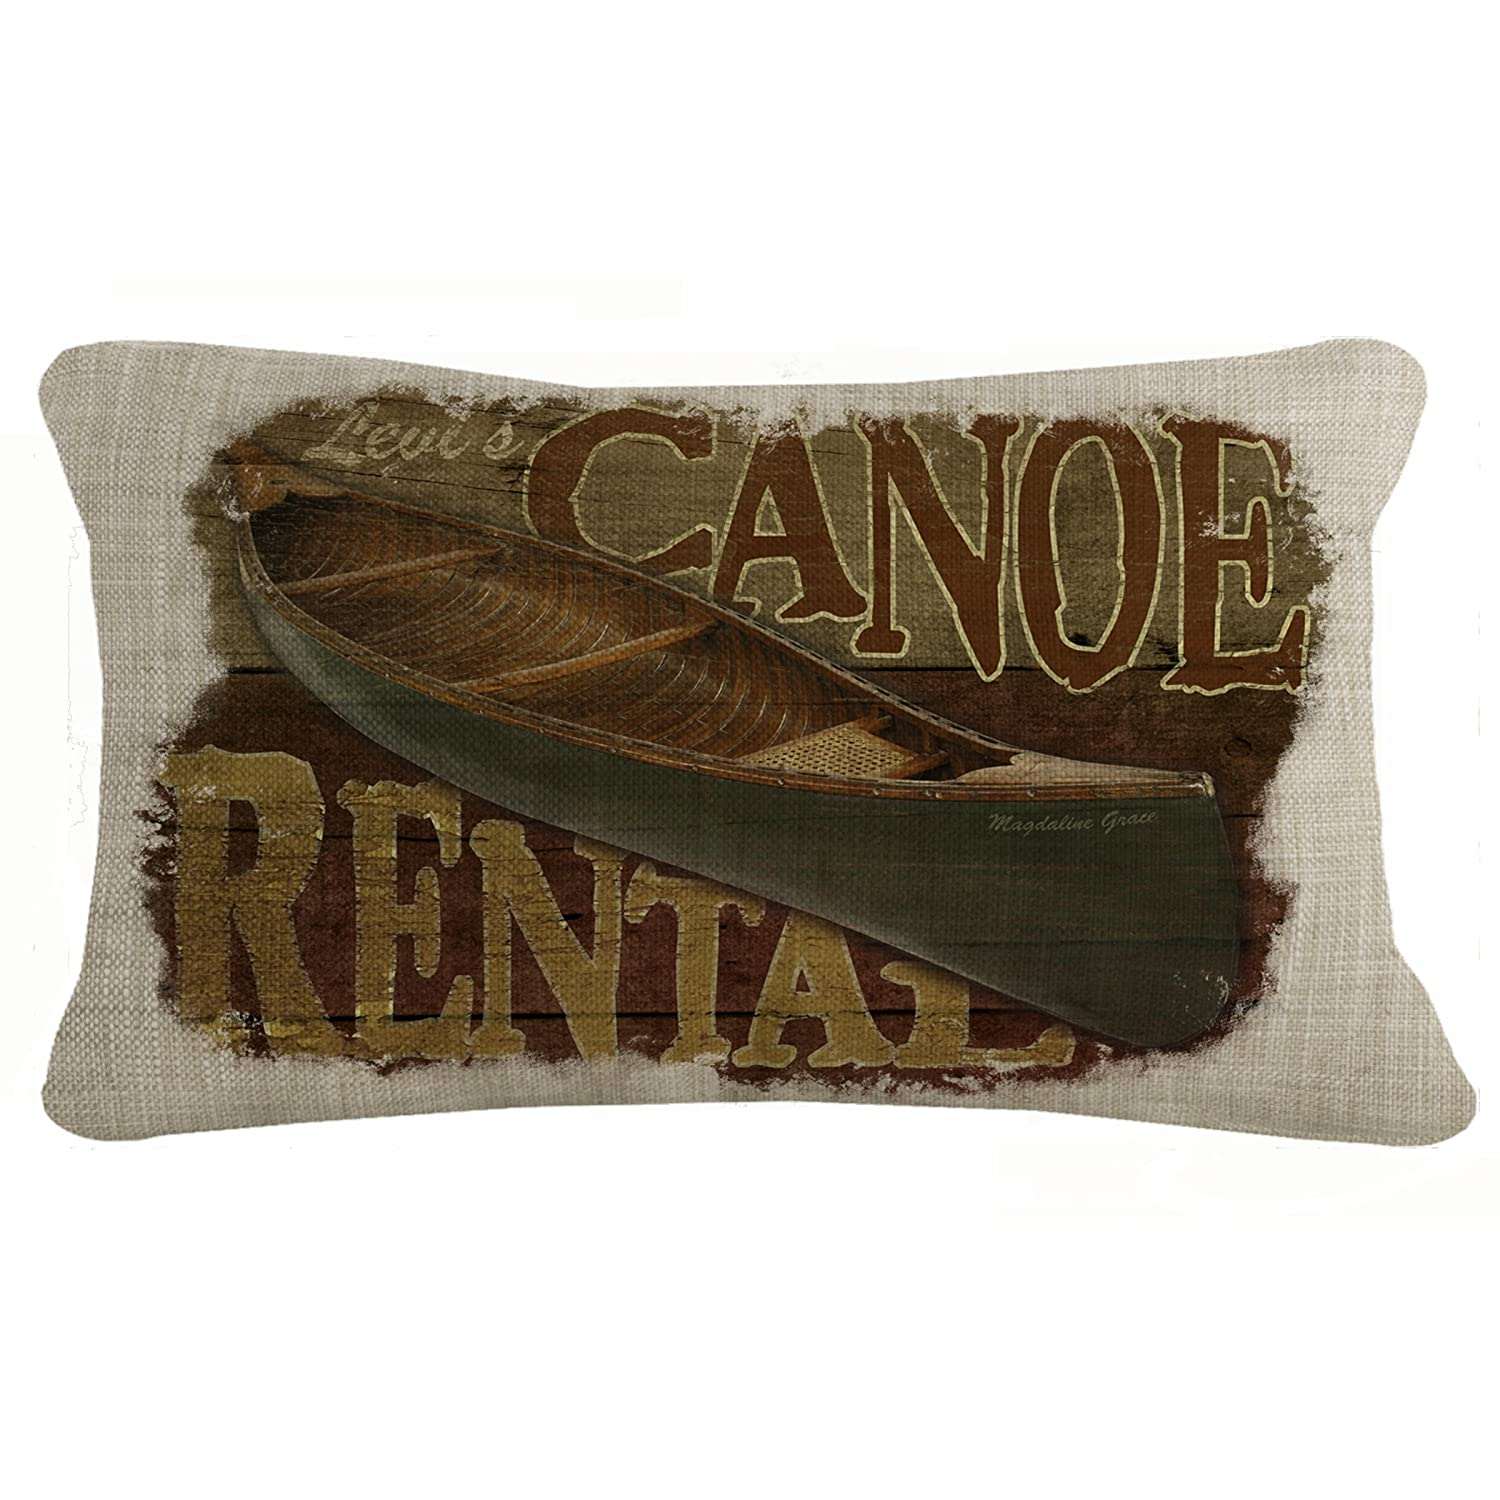 Heritage Lace Canoe Rental Lodge Hollow 12 X 20 Natural Pillow Cover